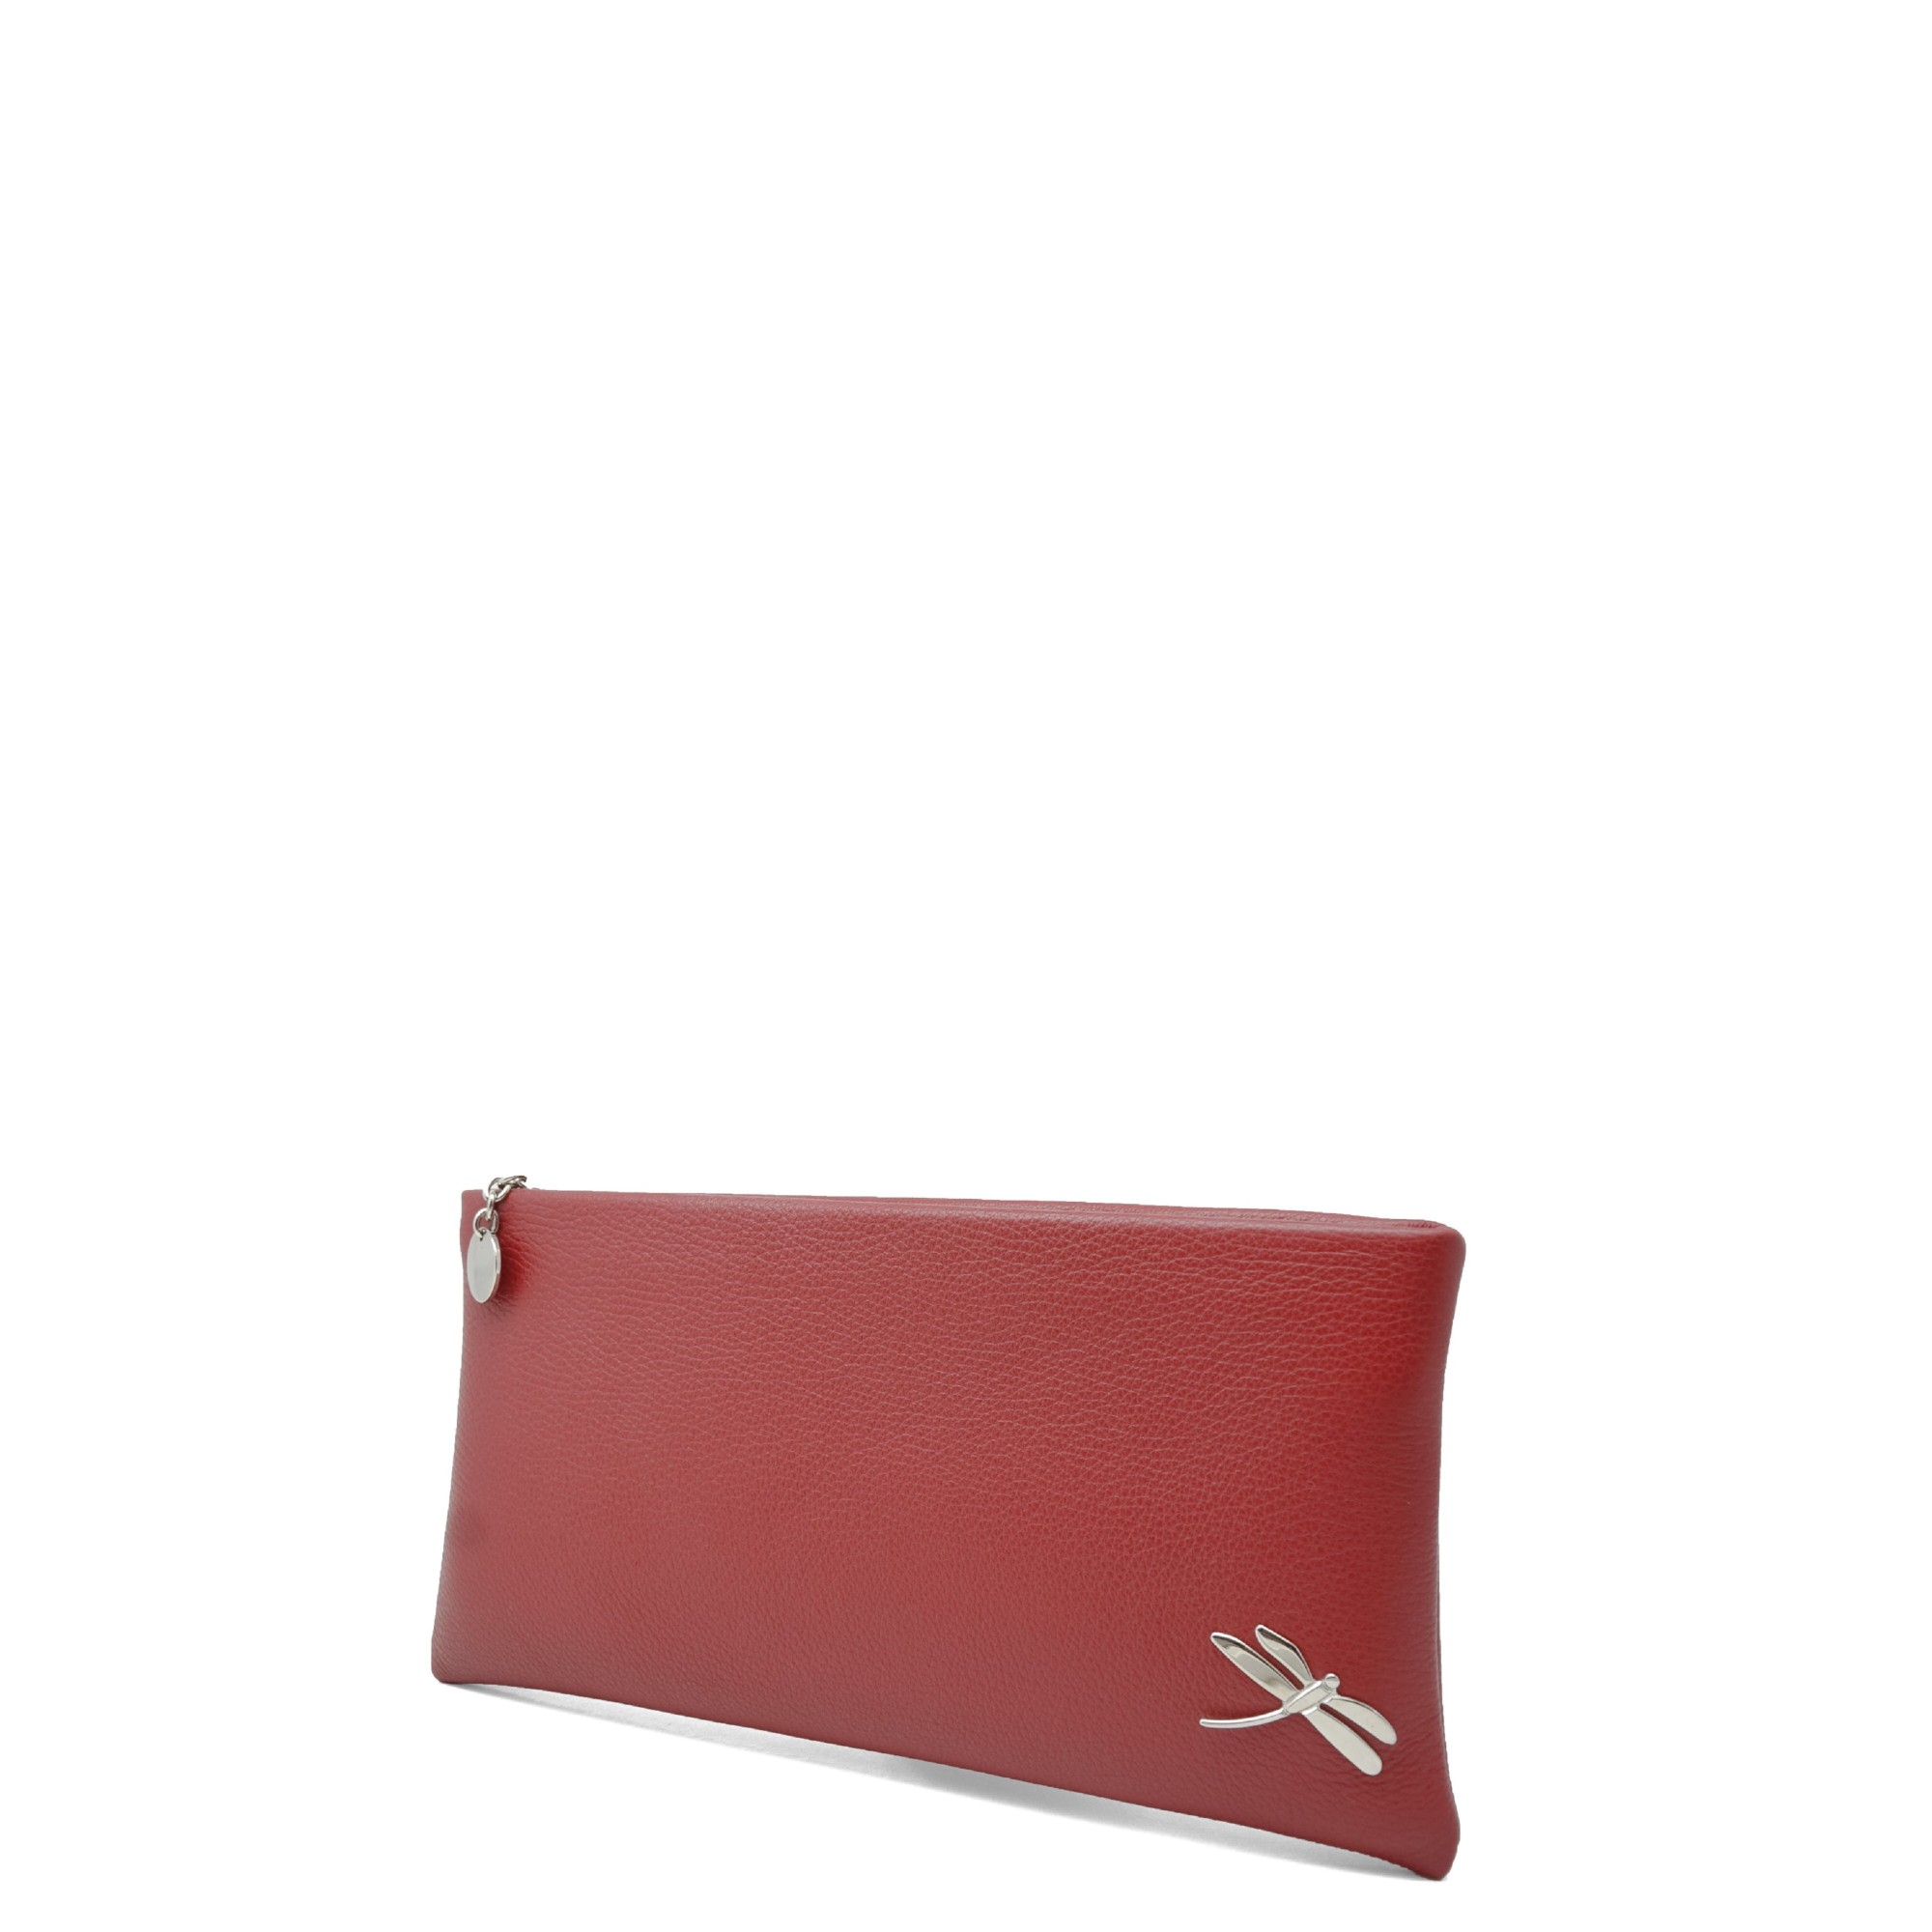 Minimalist Design Clutch Handbag with polished Italian details. Top zip closure, back hand strap, one interior zip pocket. Soft leather lining.